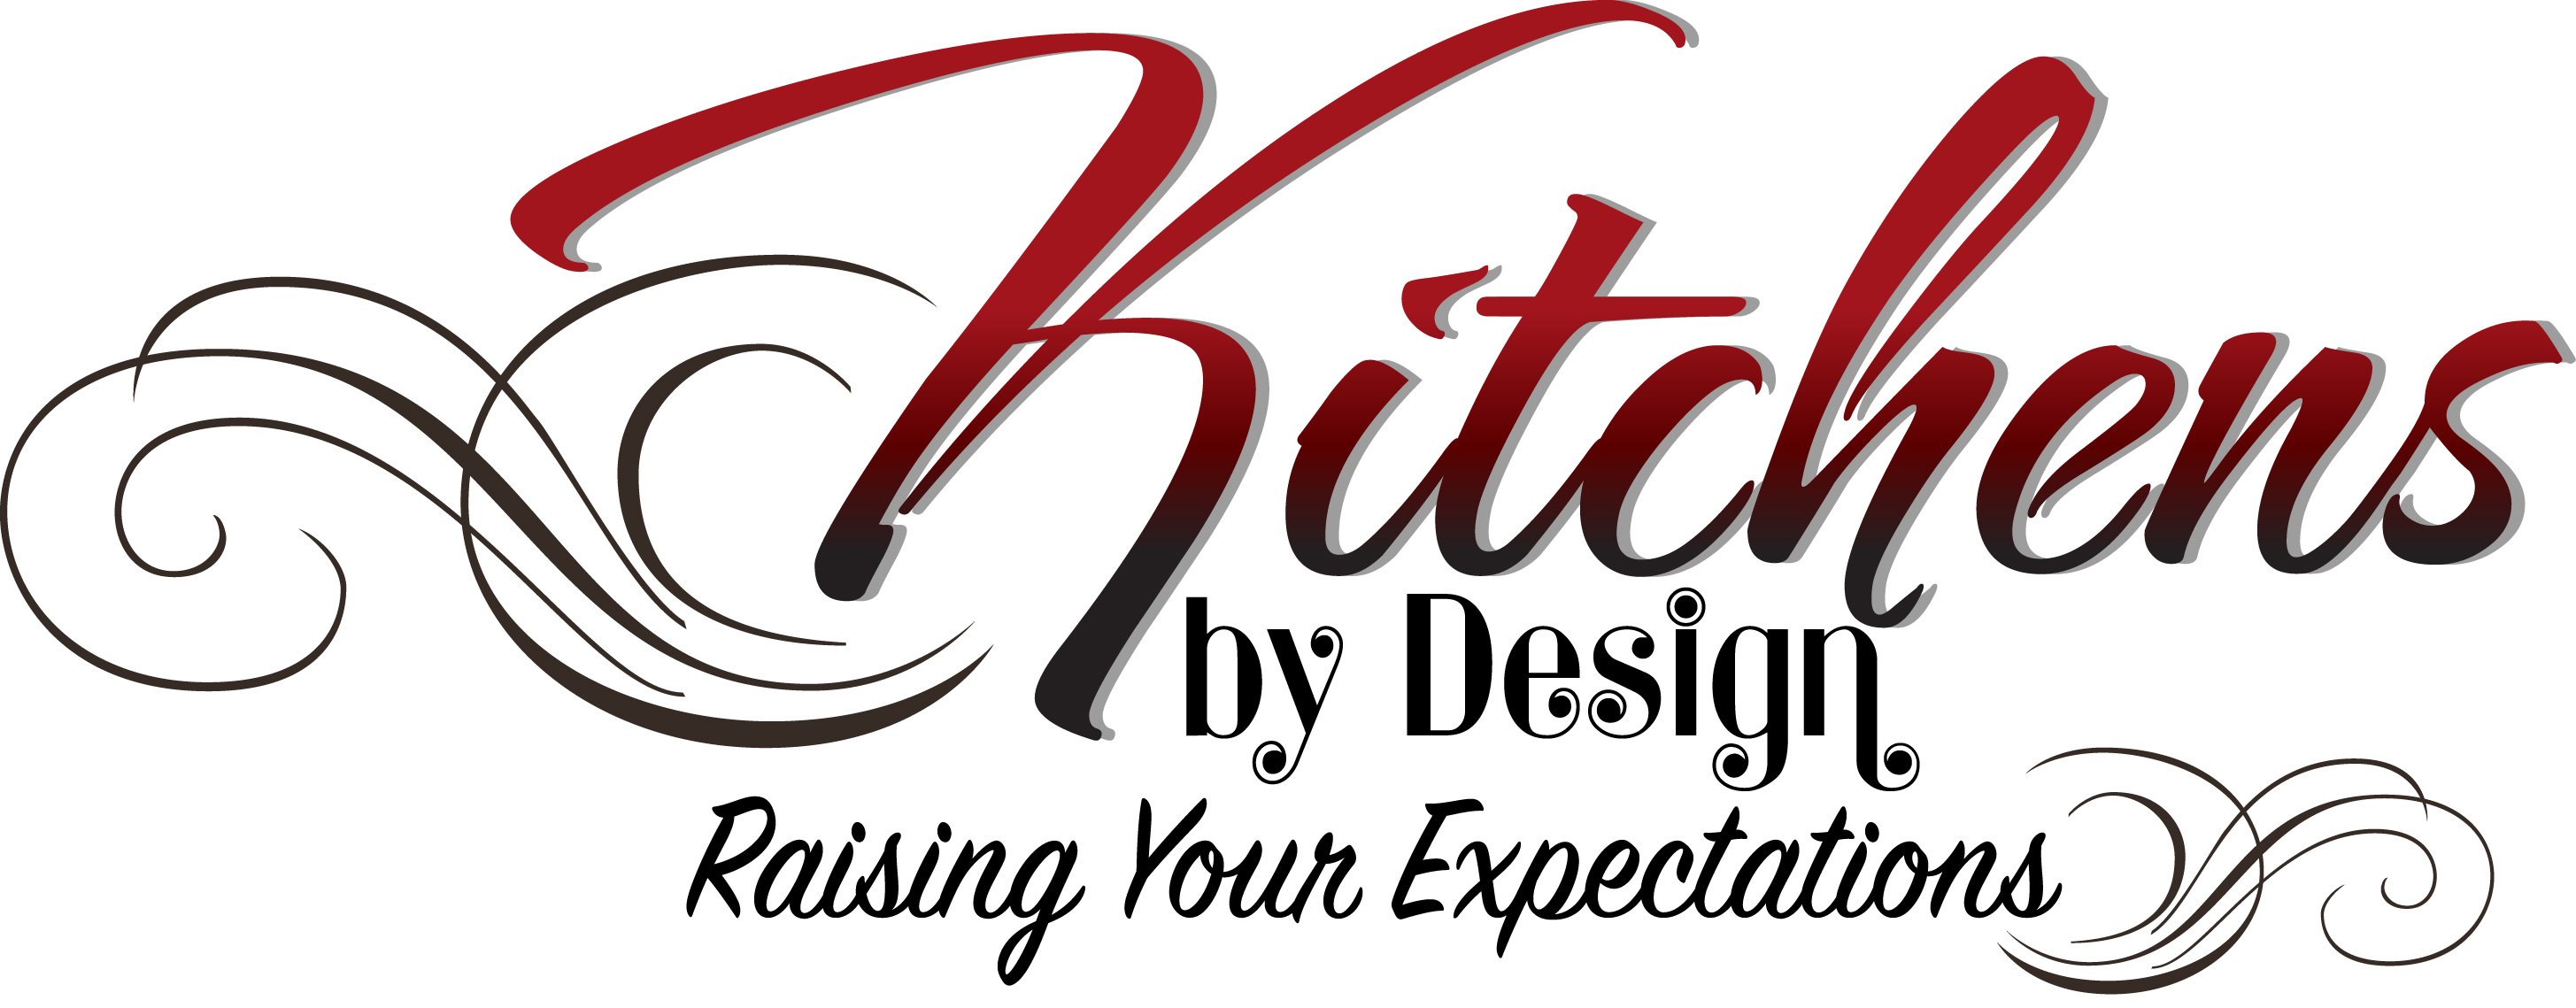 67 53 kitchens by design Kitchens by Design of Alexandria